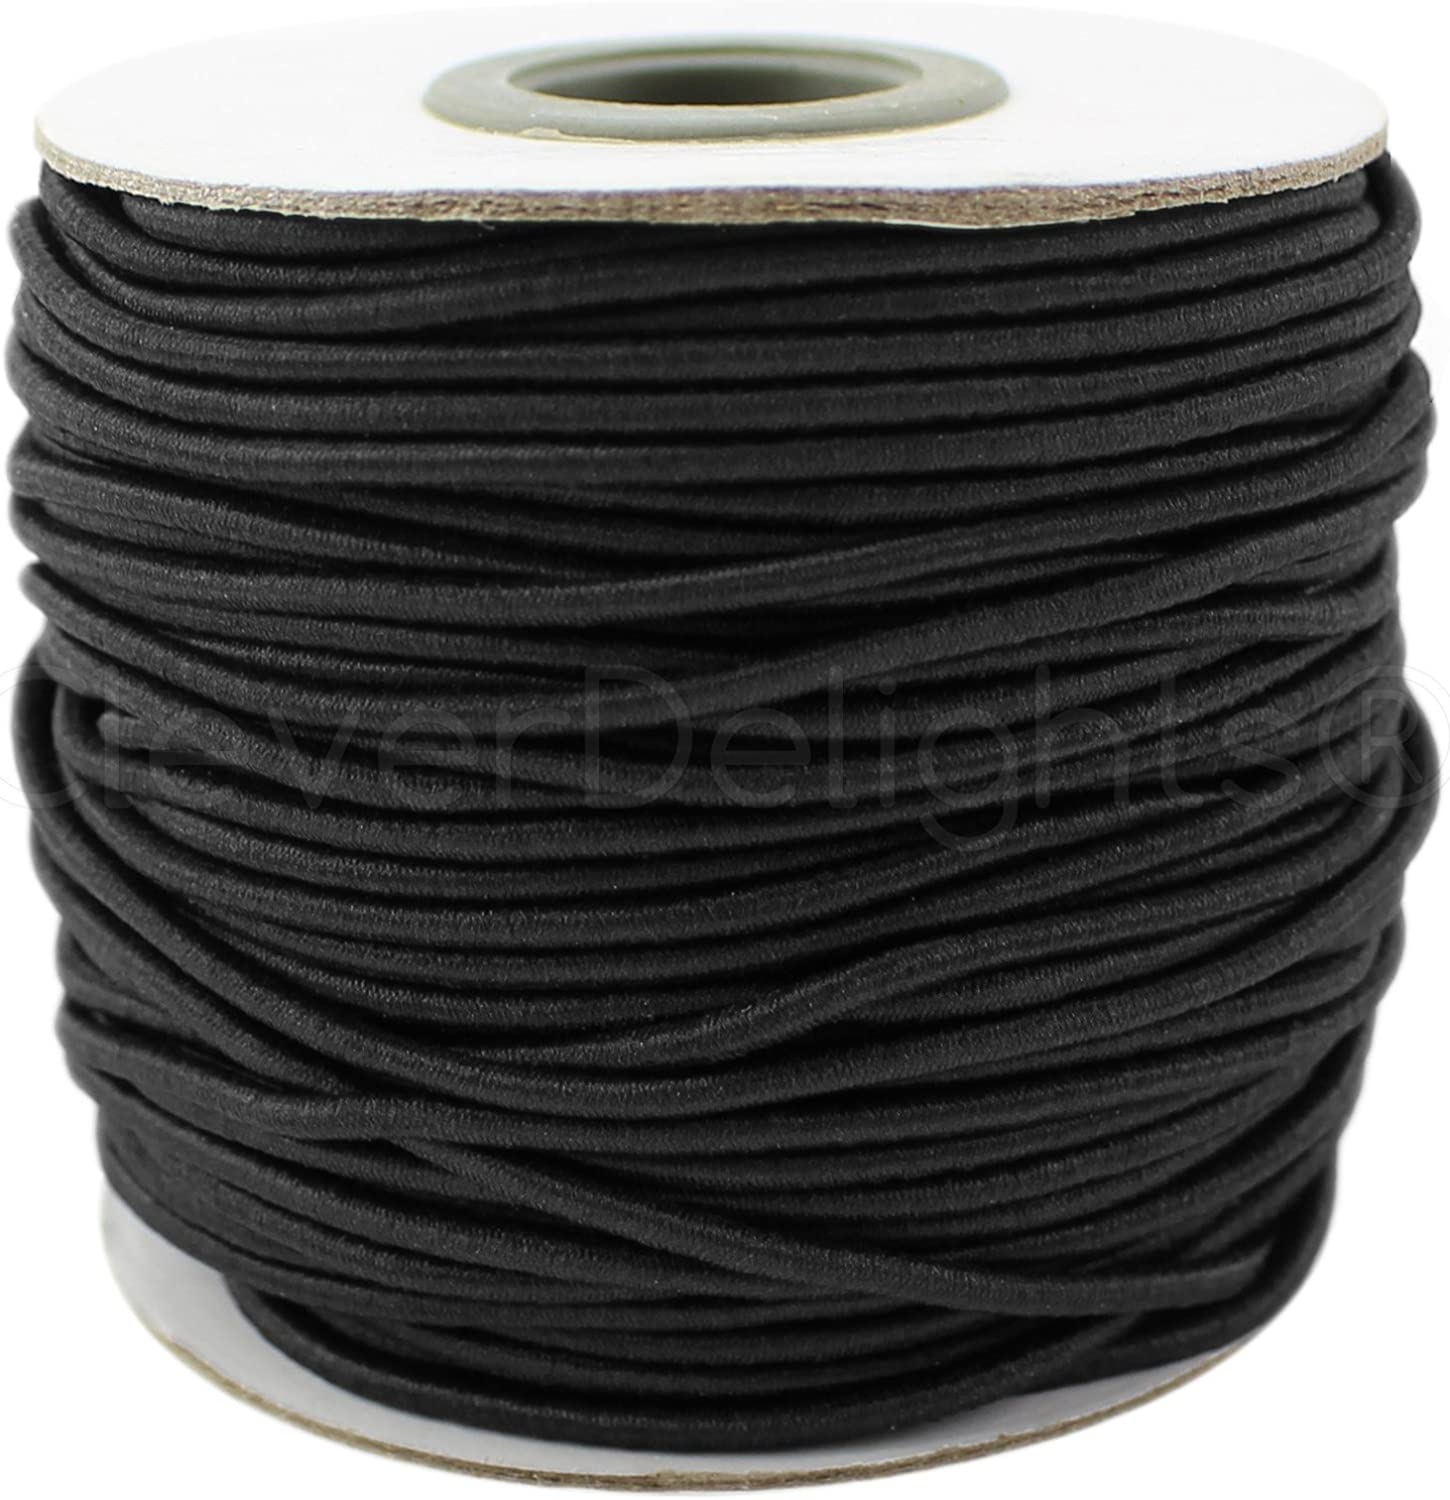 CleverDelights Black Fabric Elastic Cord Crafts Beading Jewelry Stretch Shock Cording 10 Yards 2mm